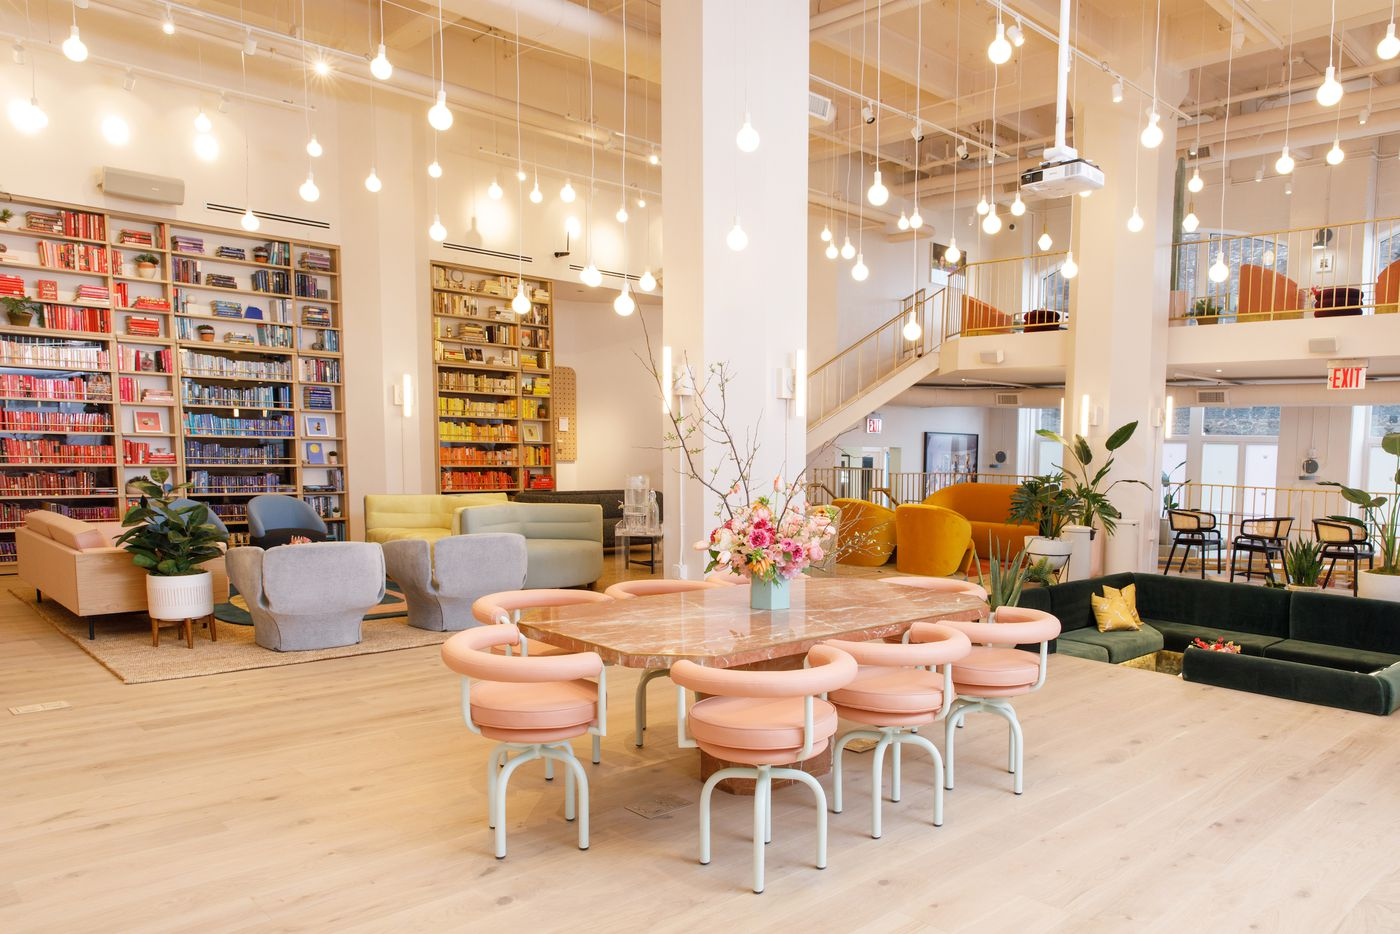 Why social clubs are the next big thing in coworking - Curbed